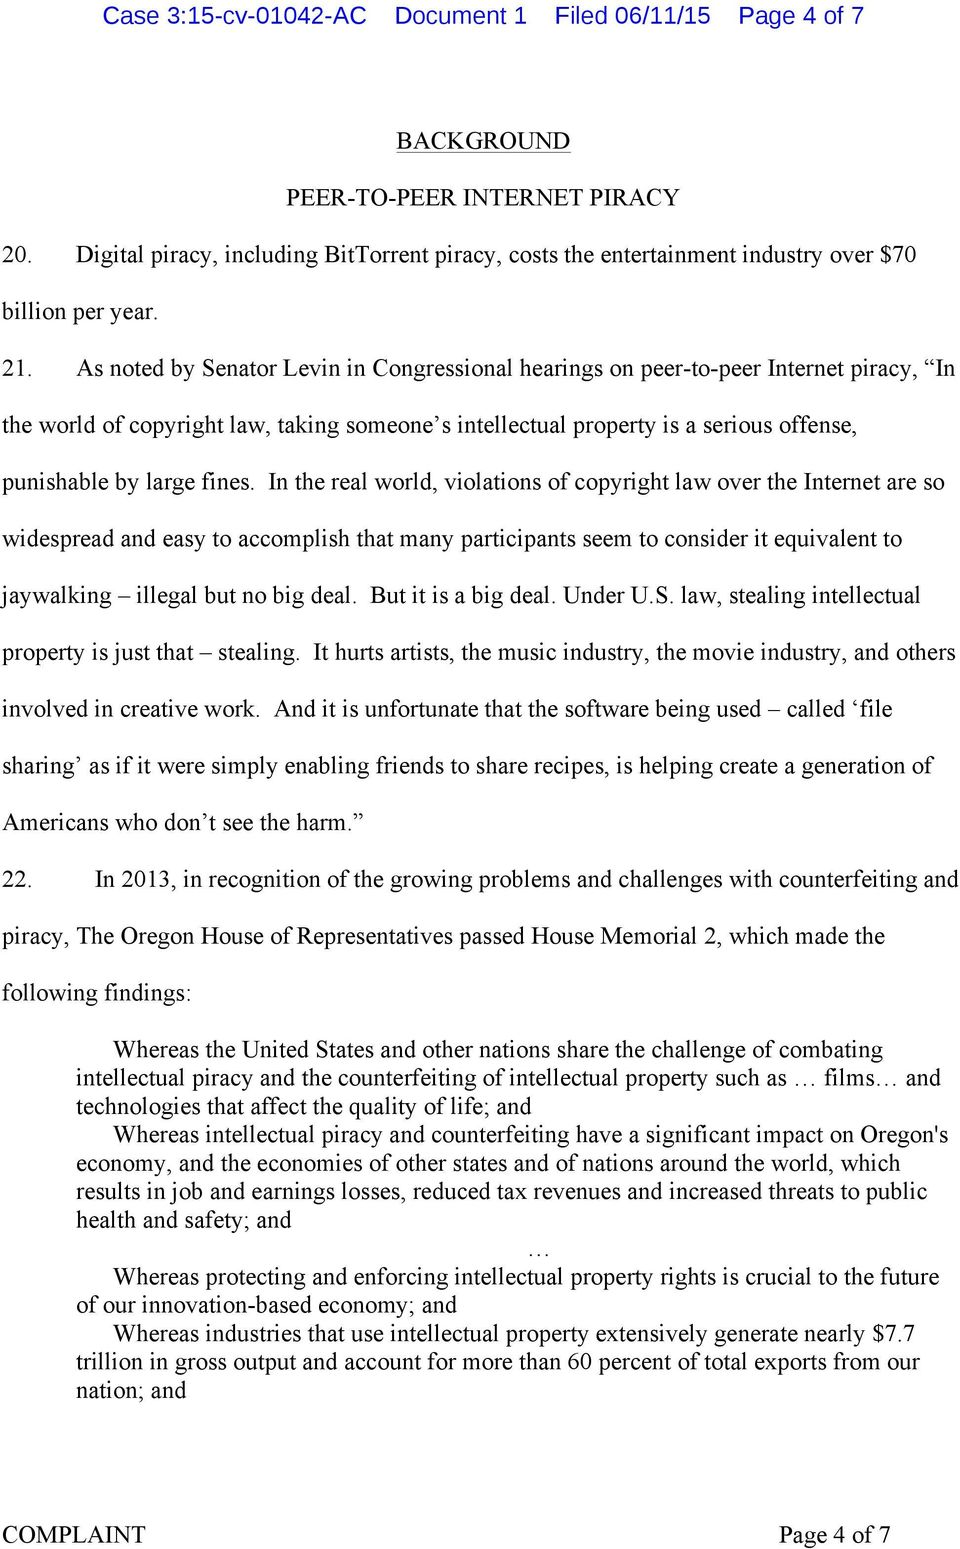 As noted by Senator Levin in Congressional hearings on peer-to-peer Internet piracy, In the world of copyright law, taking someone s intellectual property is a serious offense, punishable by large